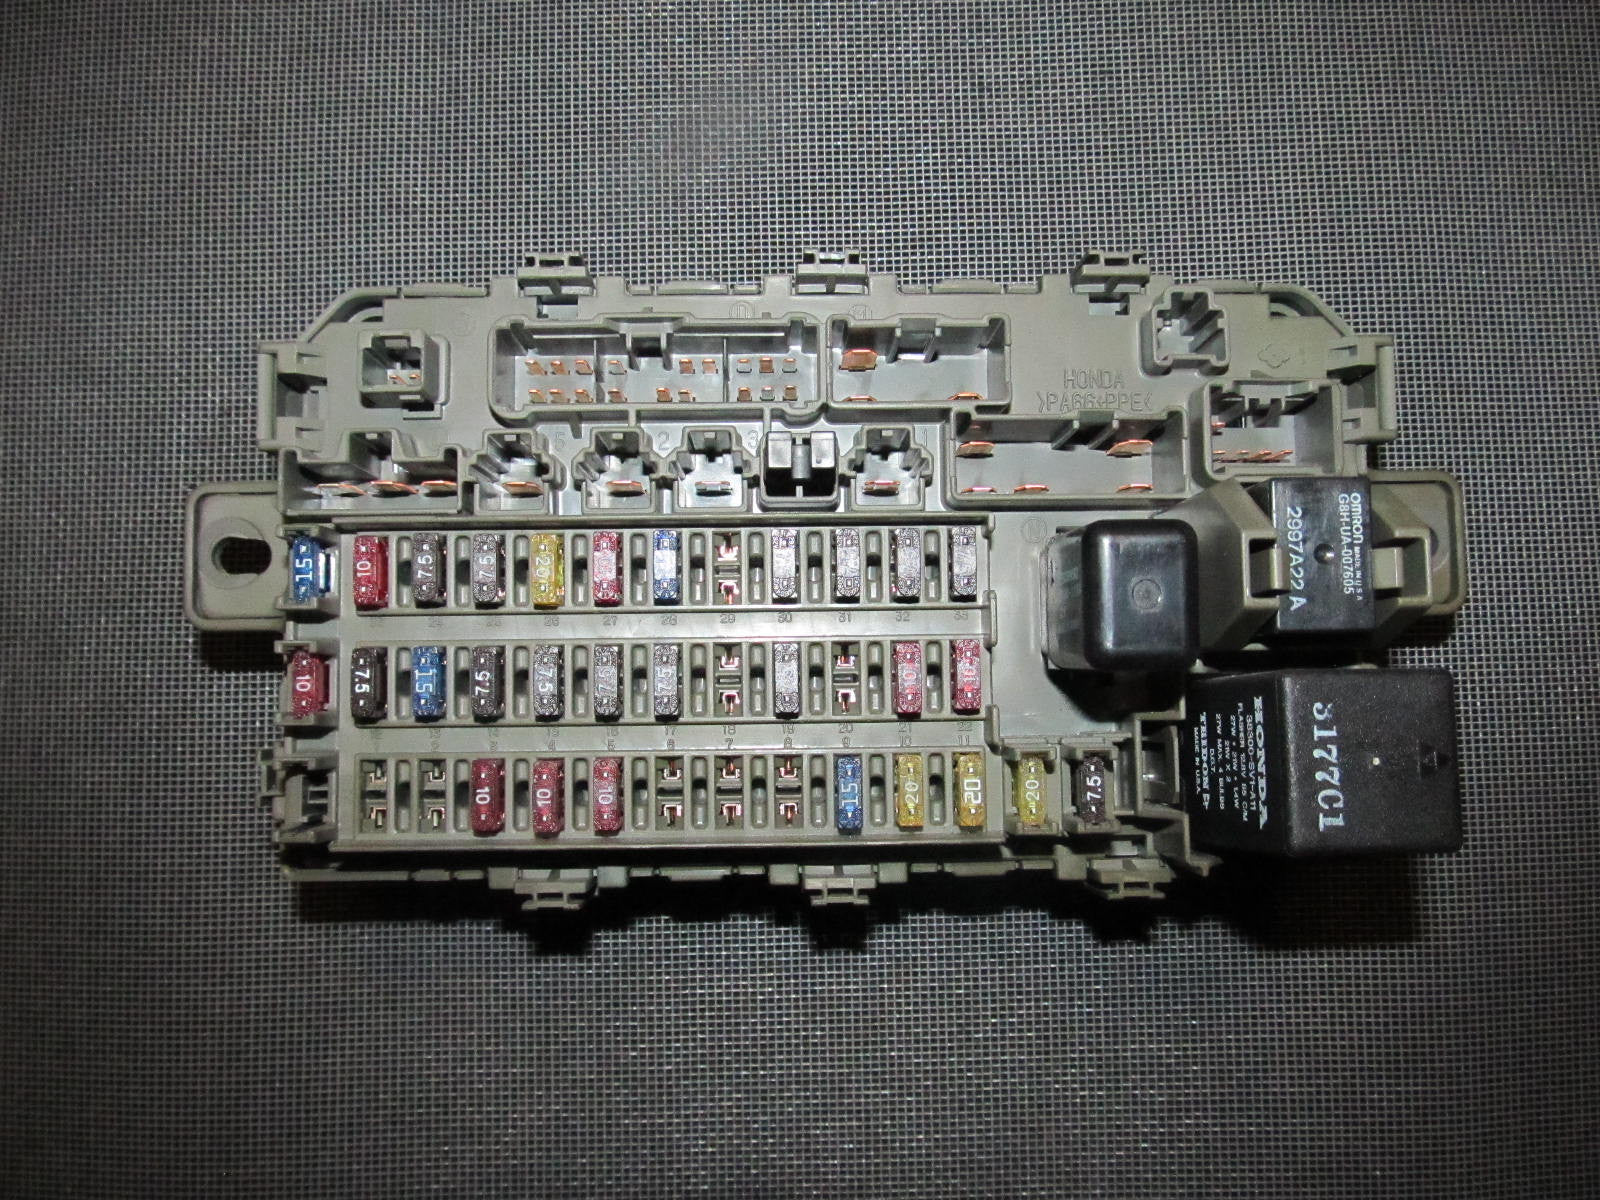 IMG_9687_e40c3657 cee5 4226 9211 04a229811583?v=1405129915 96 97 98 99 00 honda civic oem interior fuse box with relay 98 civic fuse box at alyssarenee.co